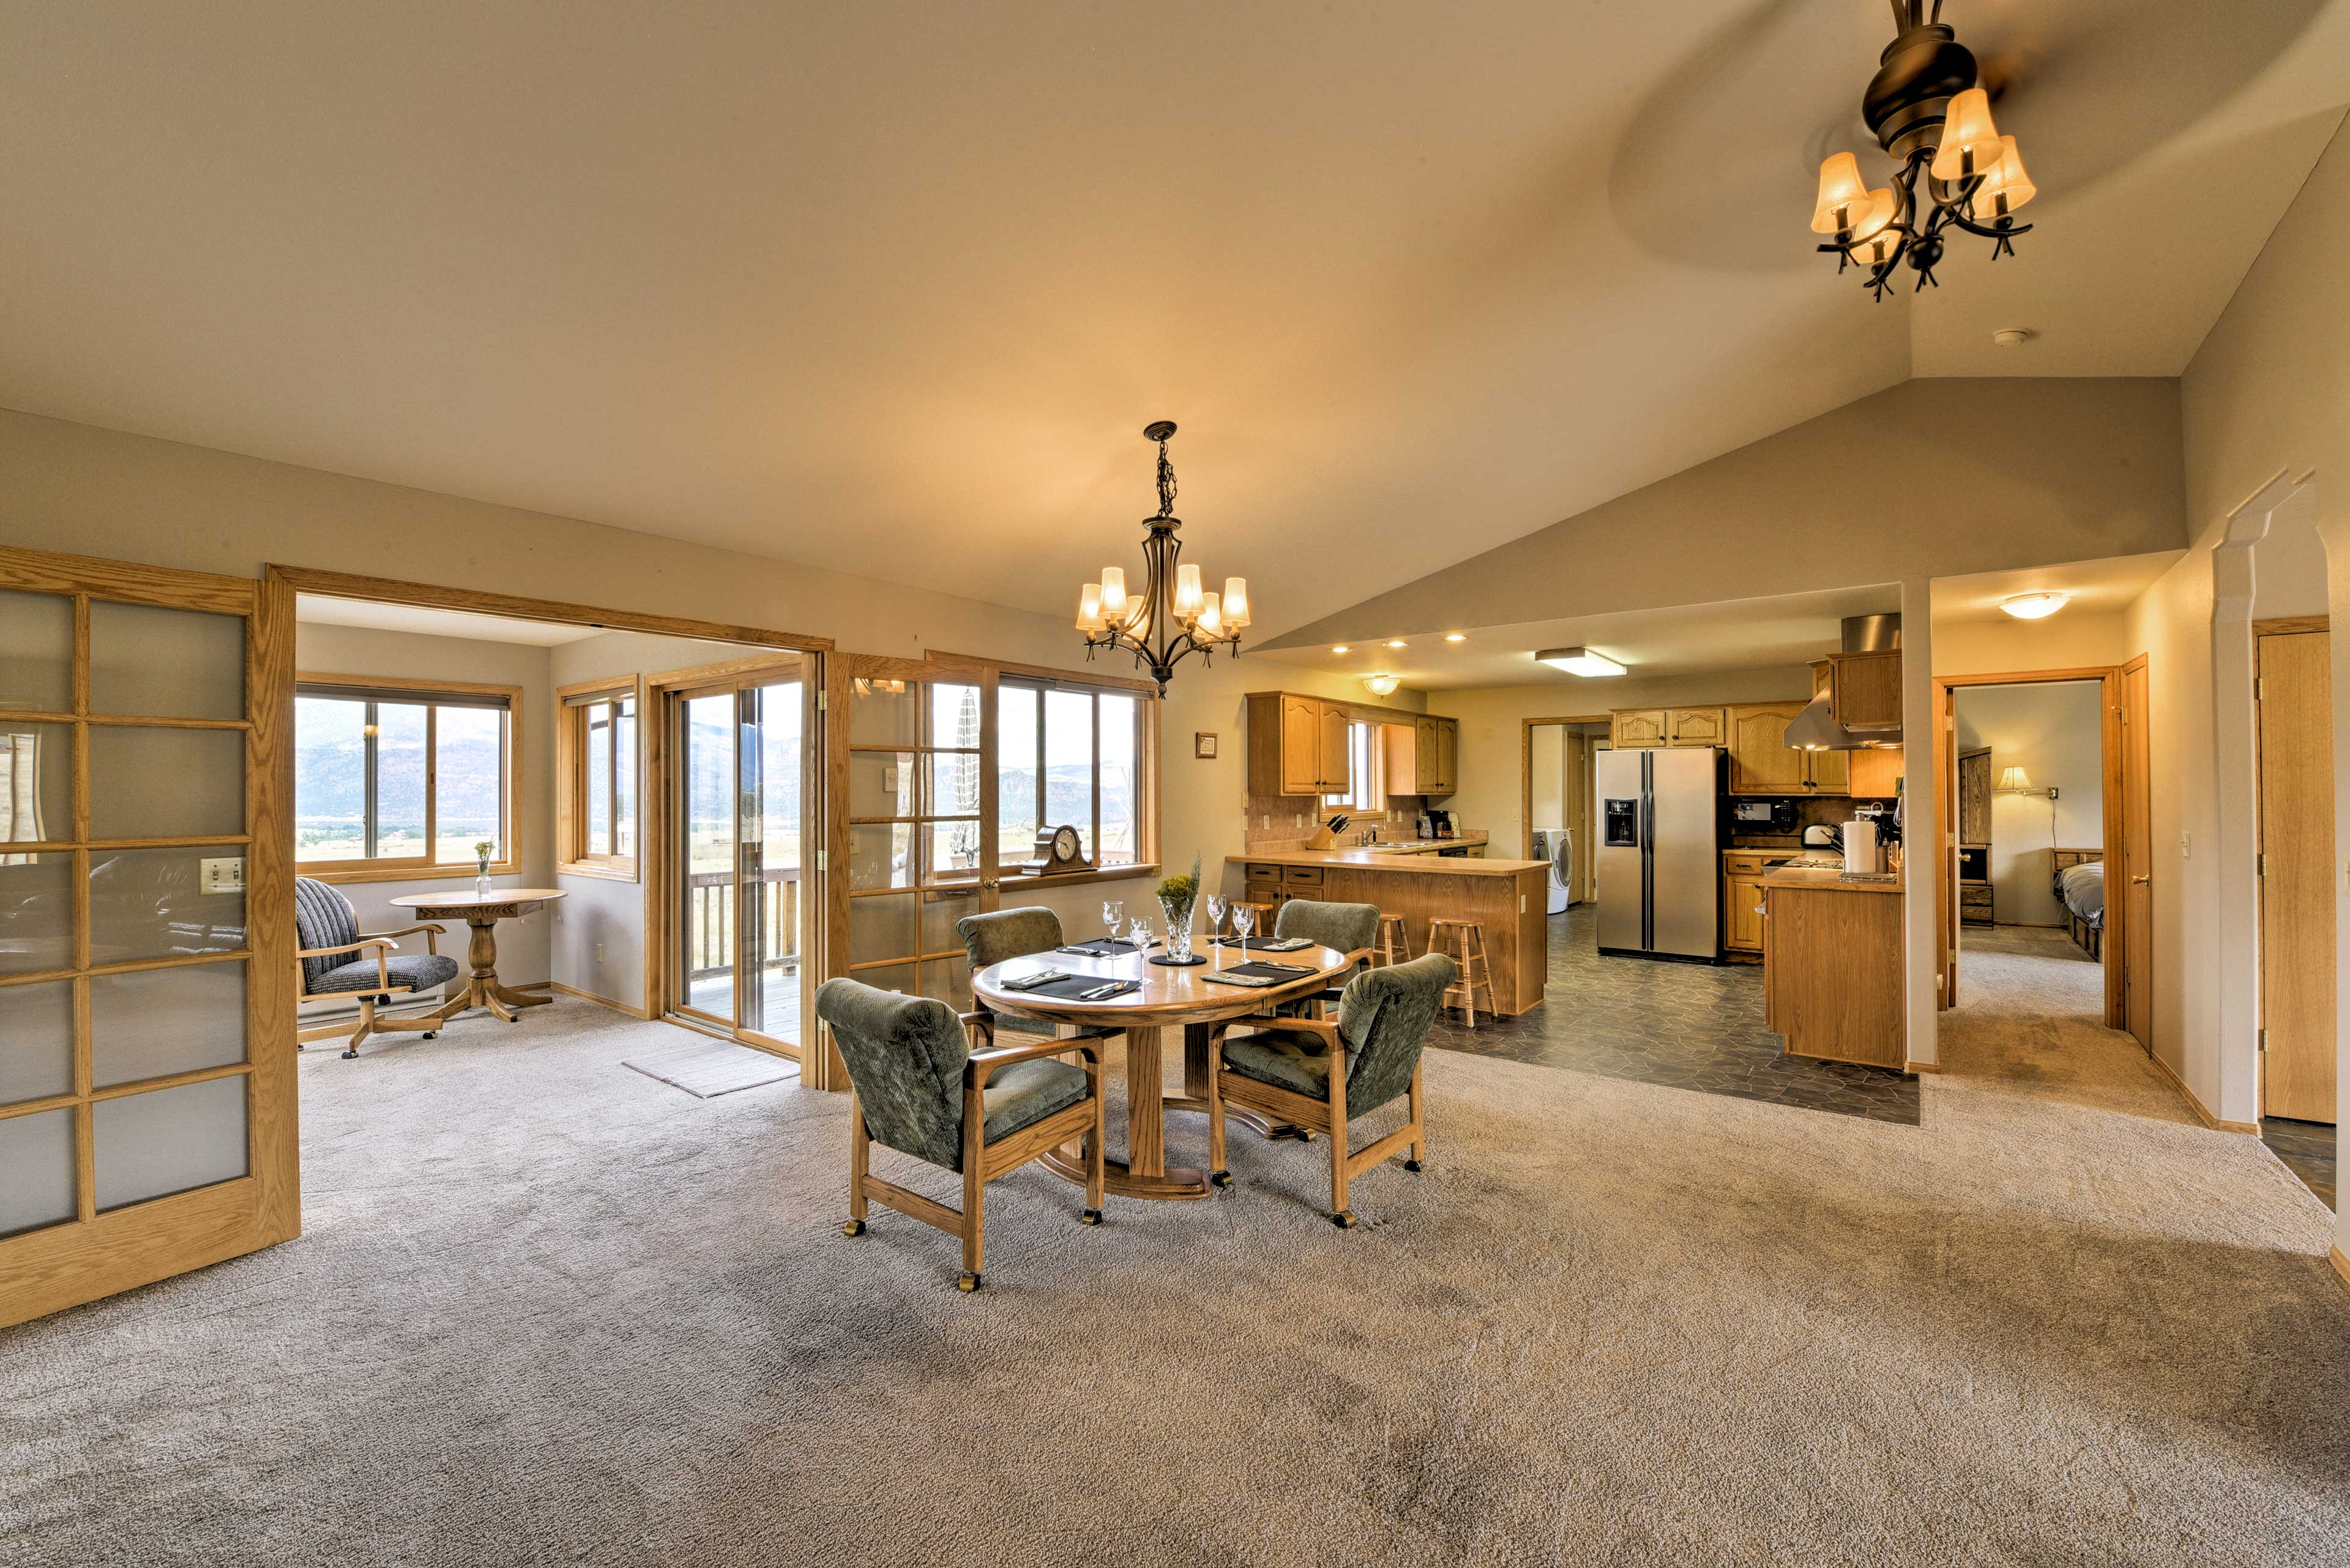 French doors lead you from the great room to the sunroom.